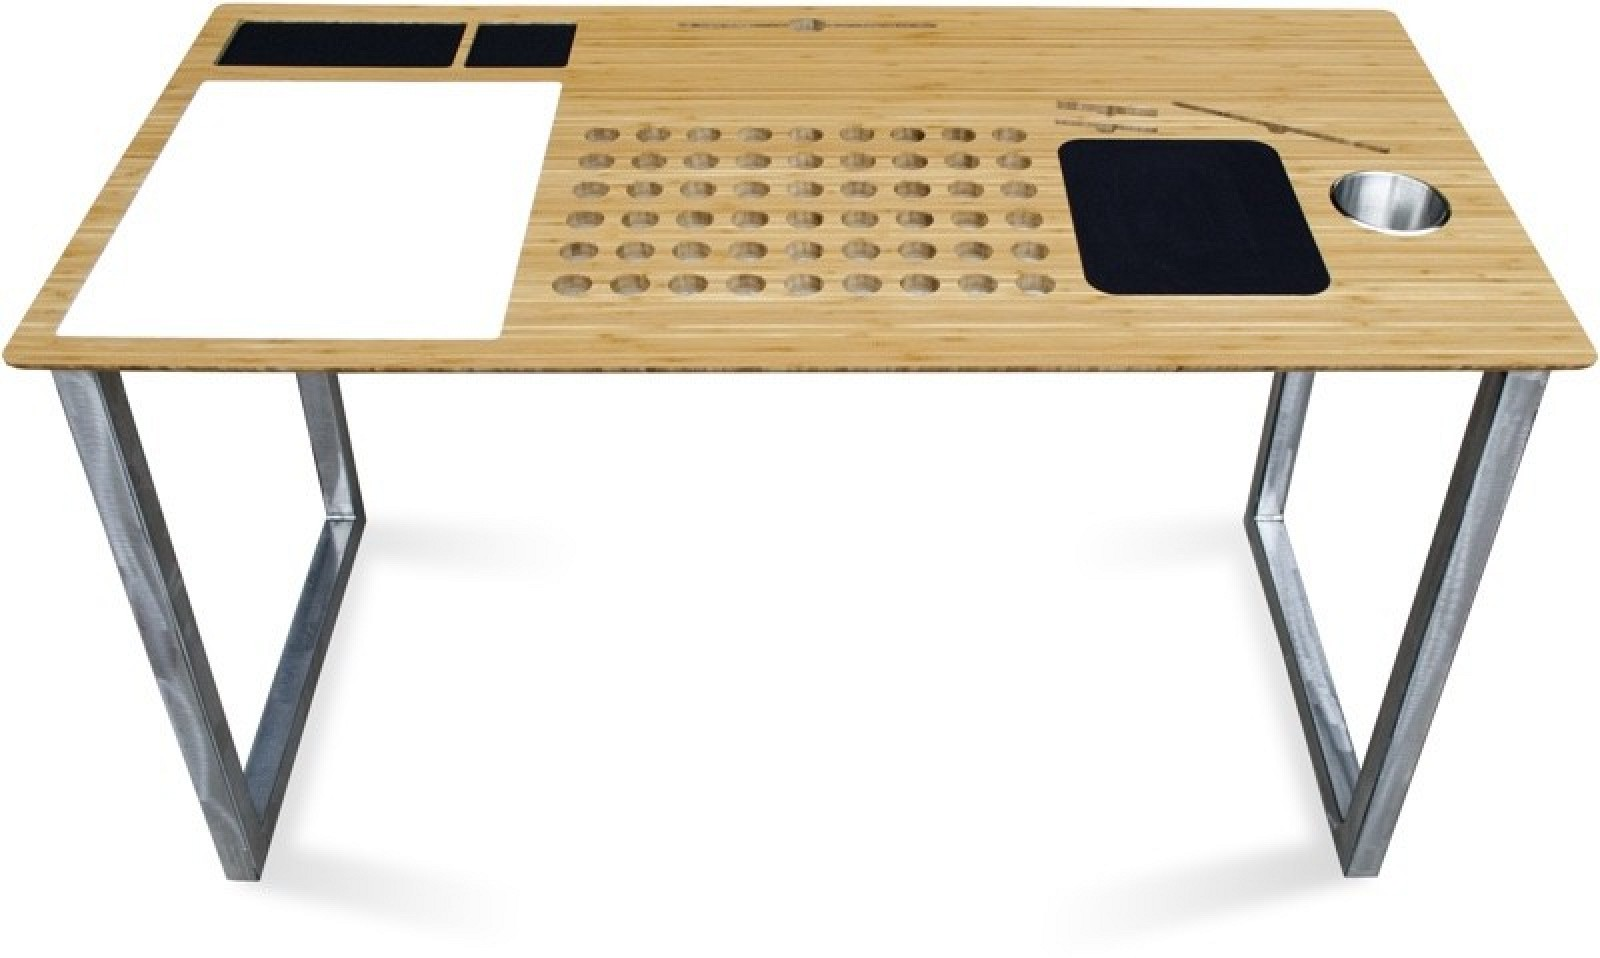 New Slatepro Techdesk Se Comes Equipped With Built In Iphone Dock Mac Air Vents And Whiteboard Rumors